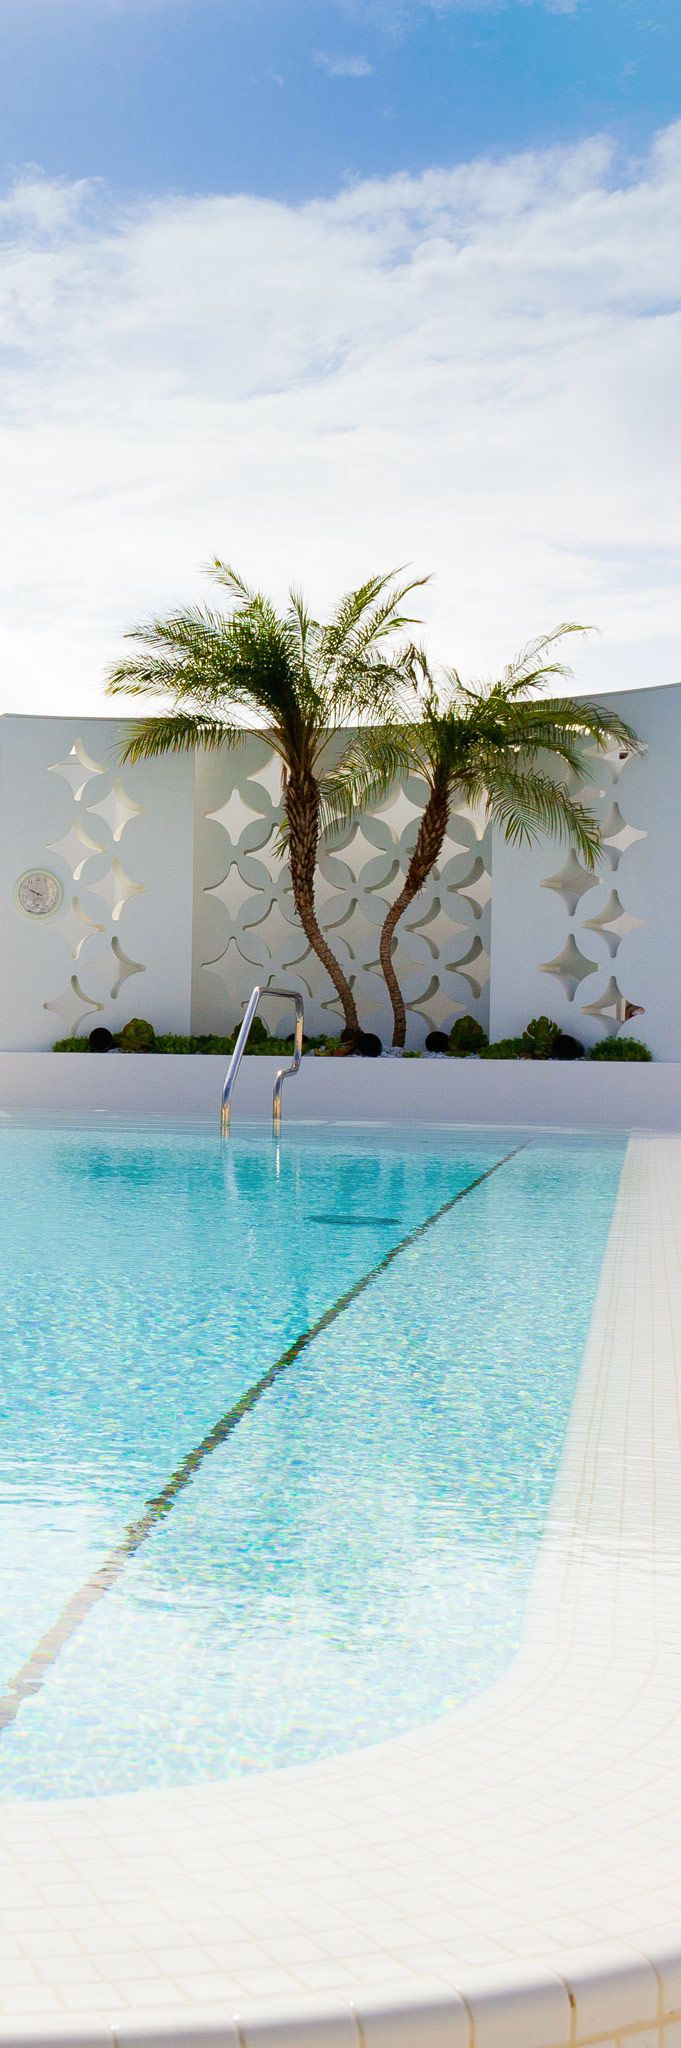 Dream south beach miami beach fl us travel and design for Rooftop pool design